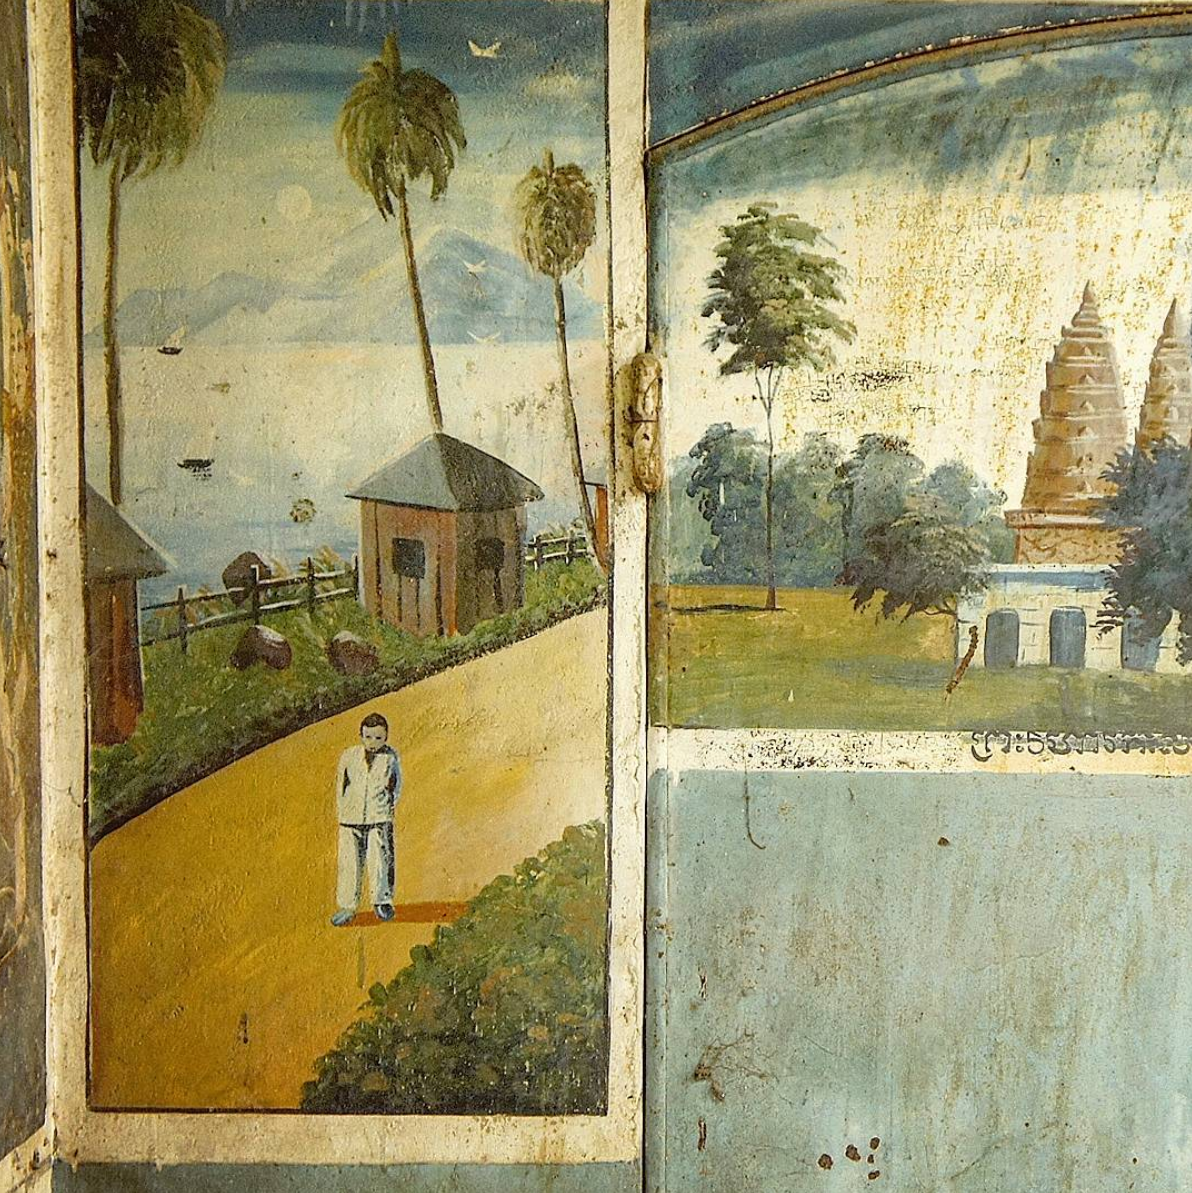 M  mural  on the interior walls of a family crypt at a local pagoda